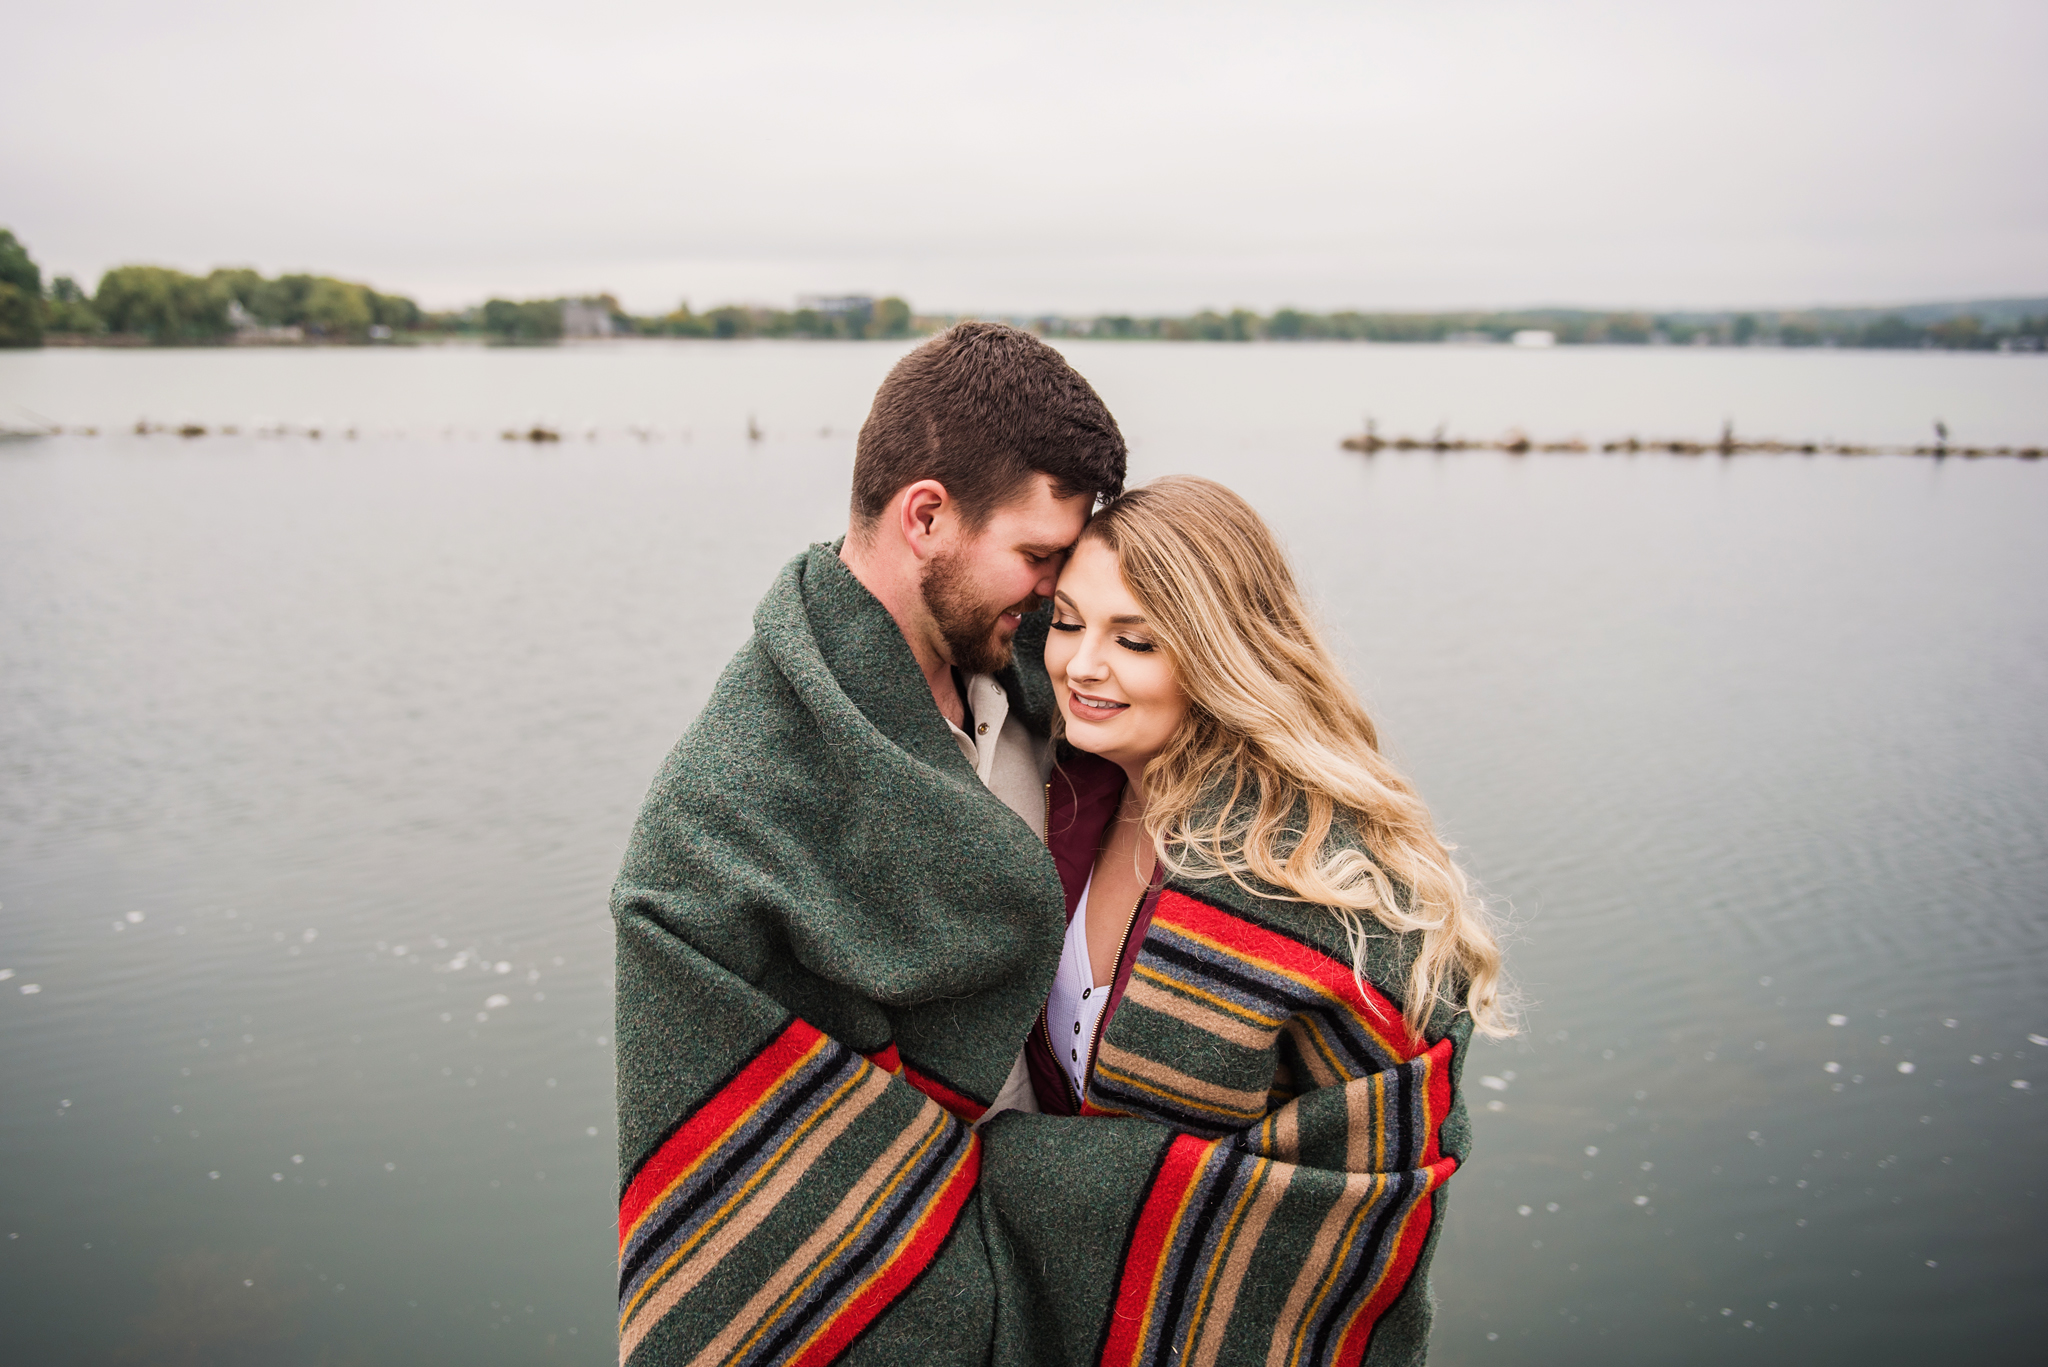 Kershaw_Park_Canandaigua_City_Pier_Finger_Lakes_Engagement_Session_JILL_STUDIO_Rochester_NY_Photographer_DSC_1602.jpg